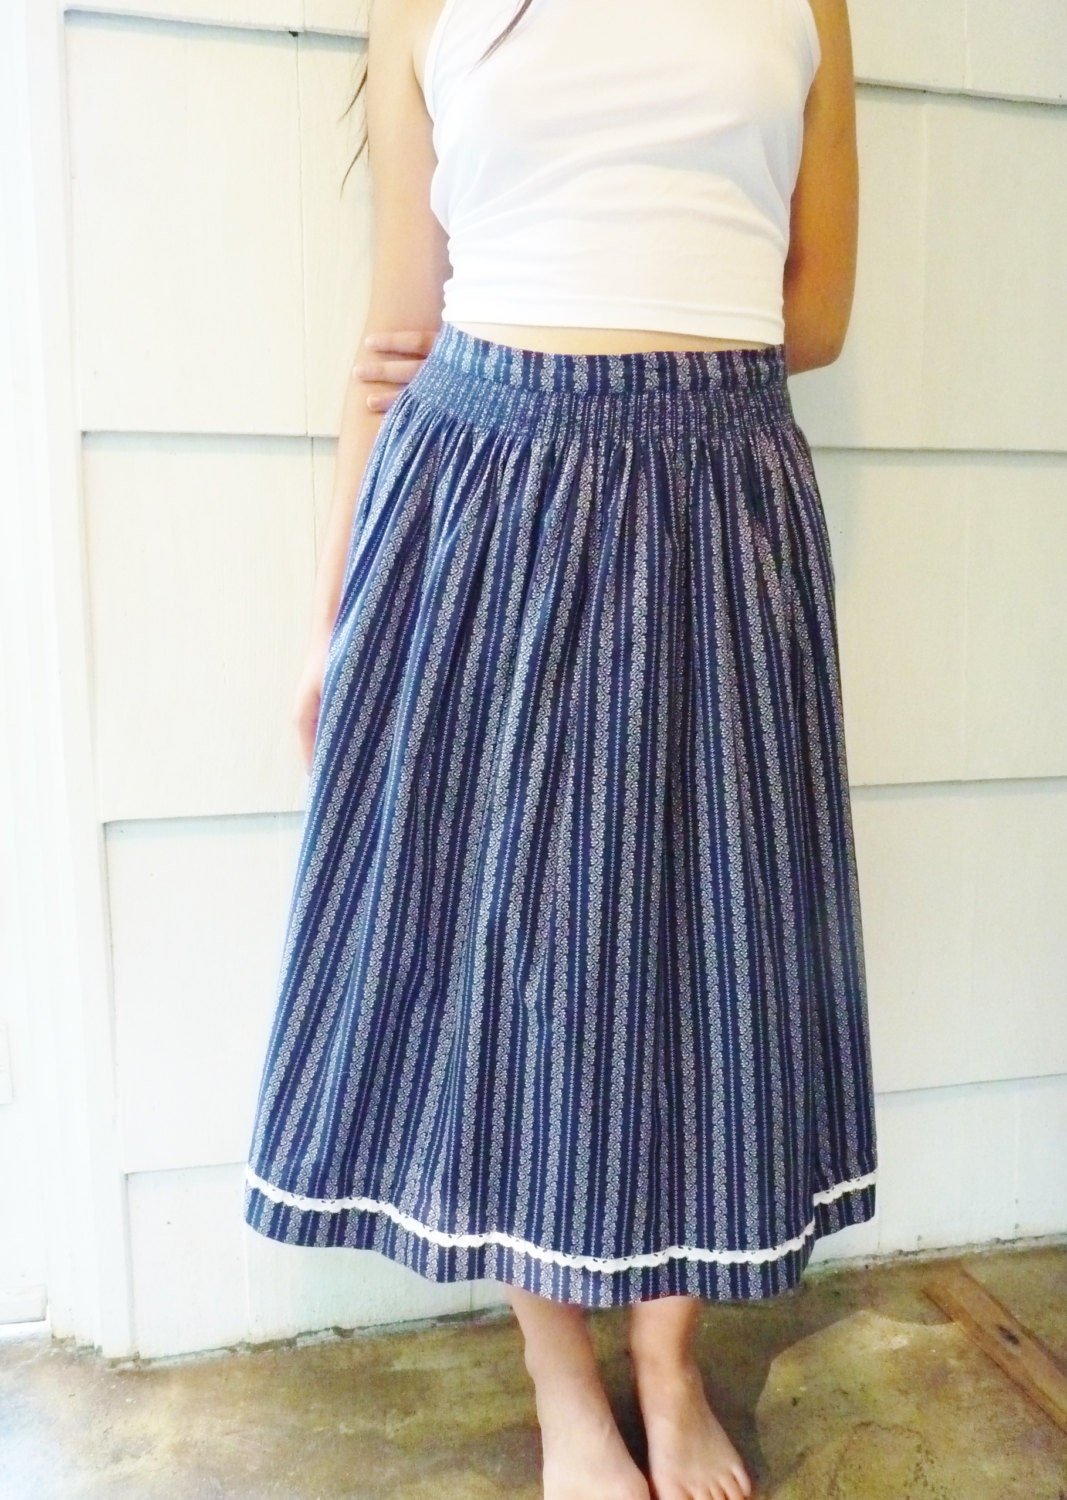 handmade classic drindl skirt in navy blue and white